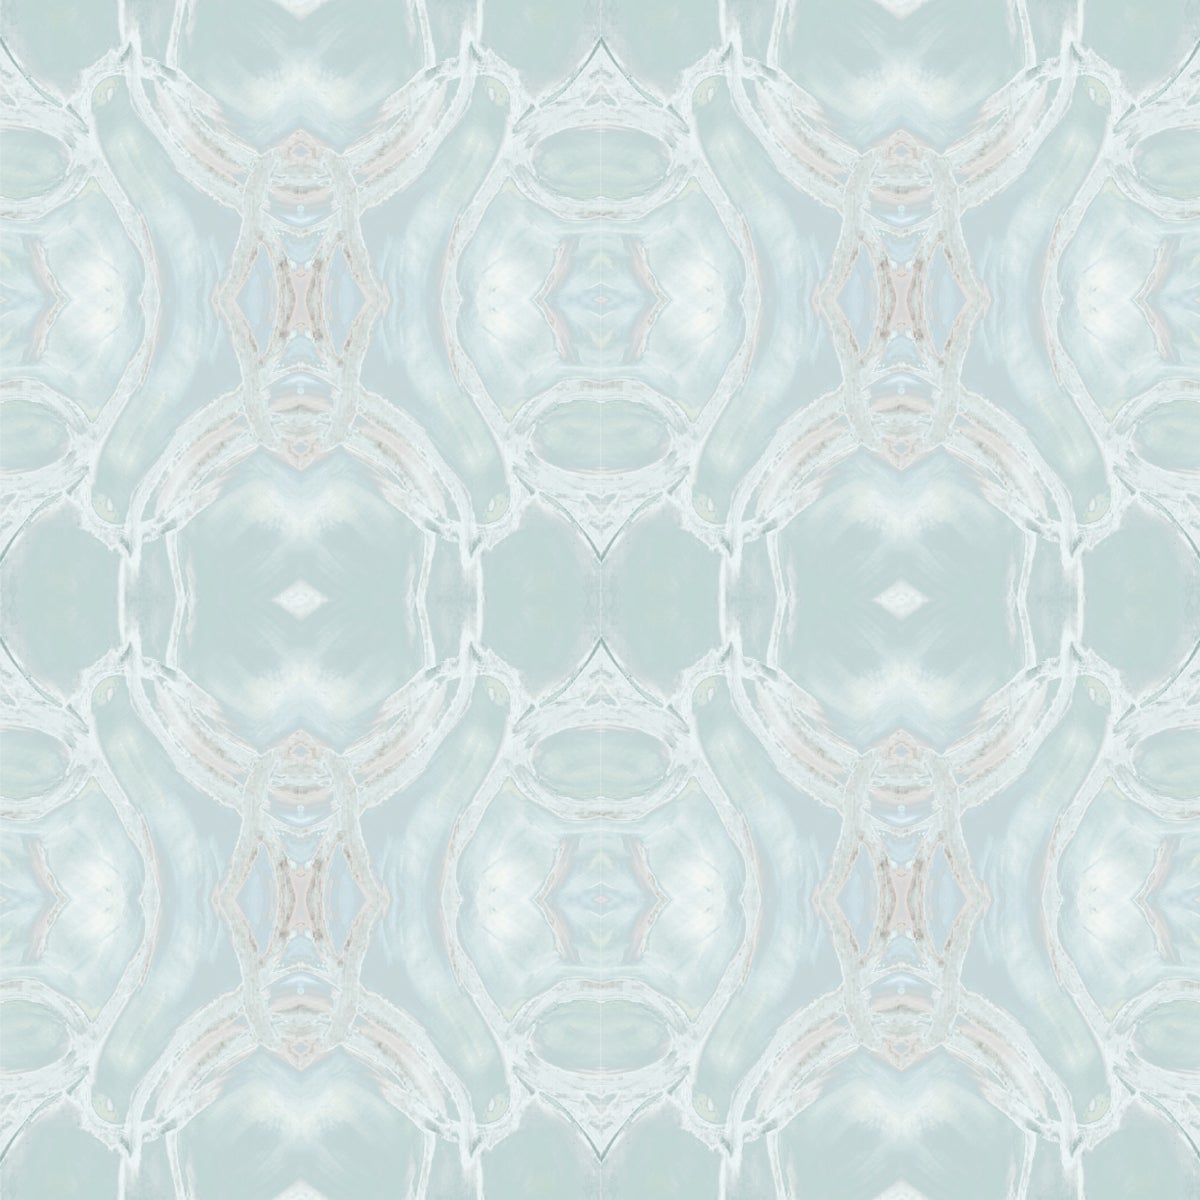 Image of 4100-B Wallpaper/Fabric